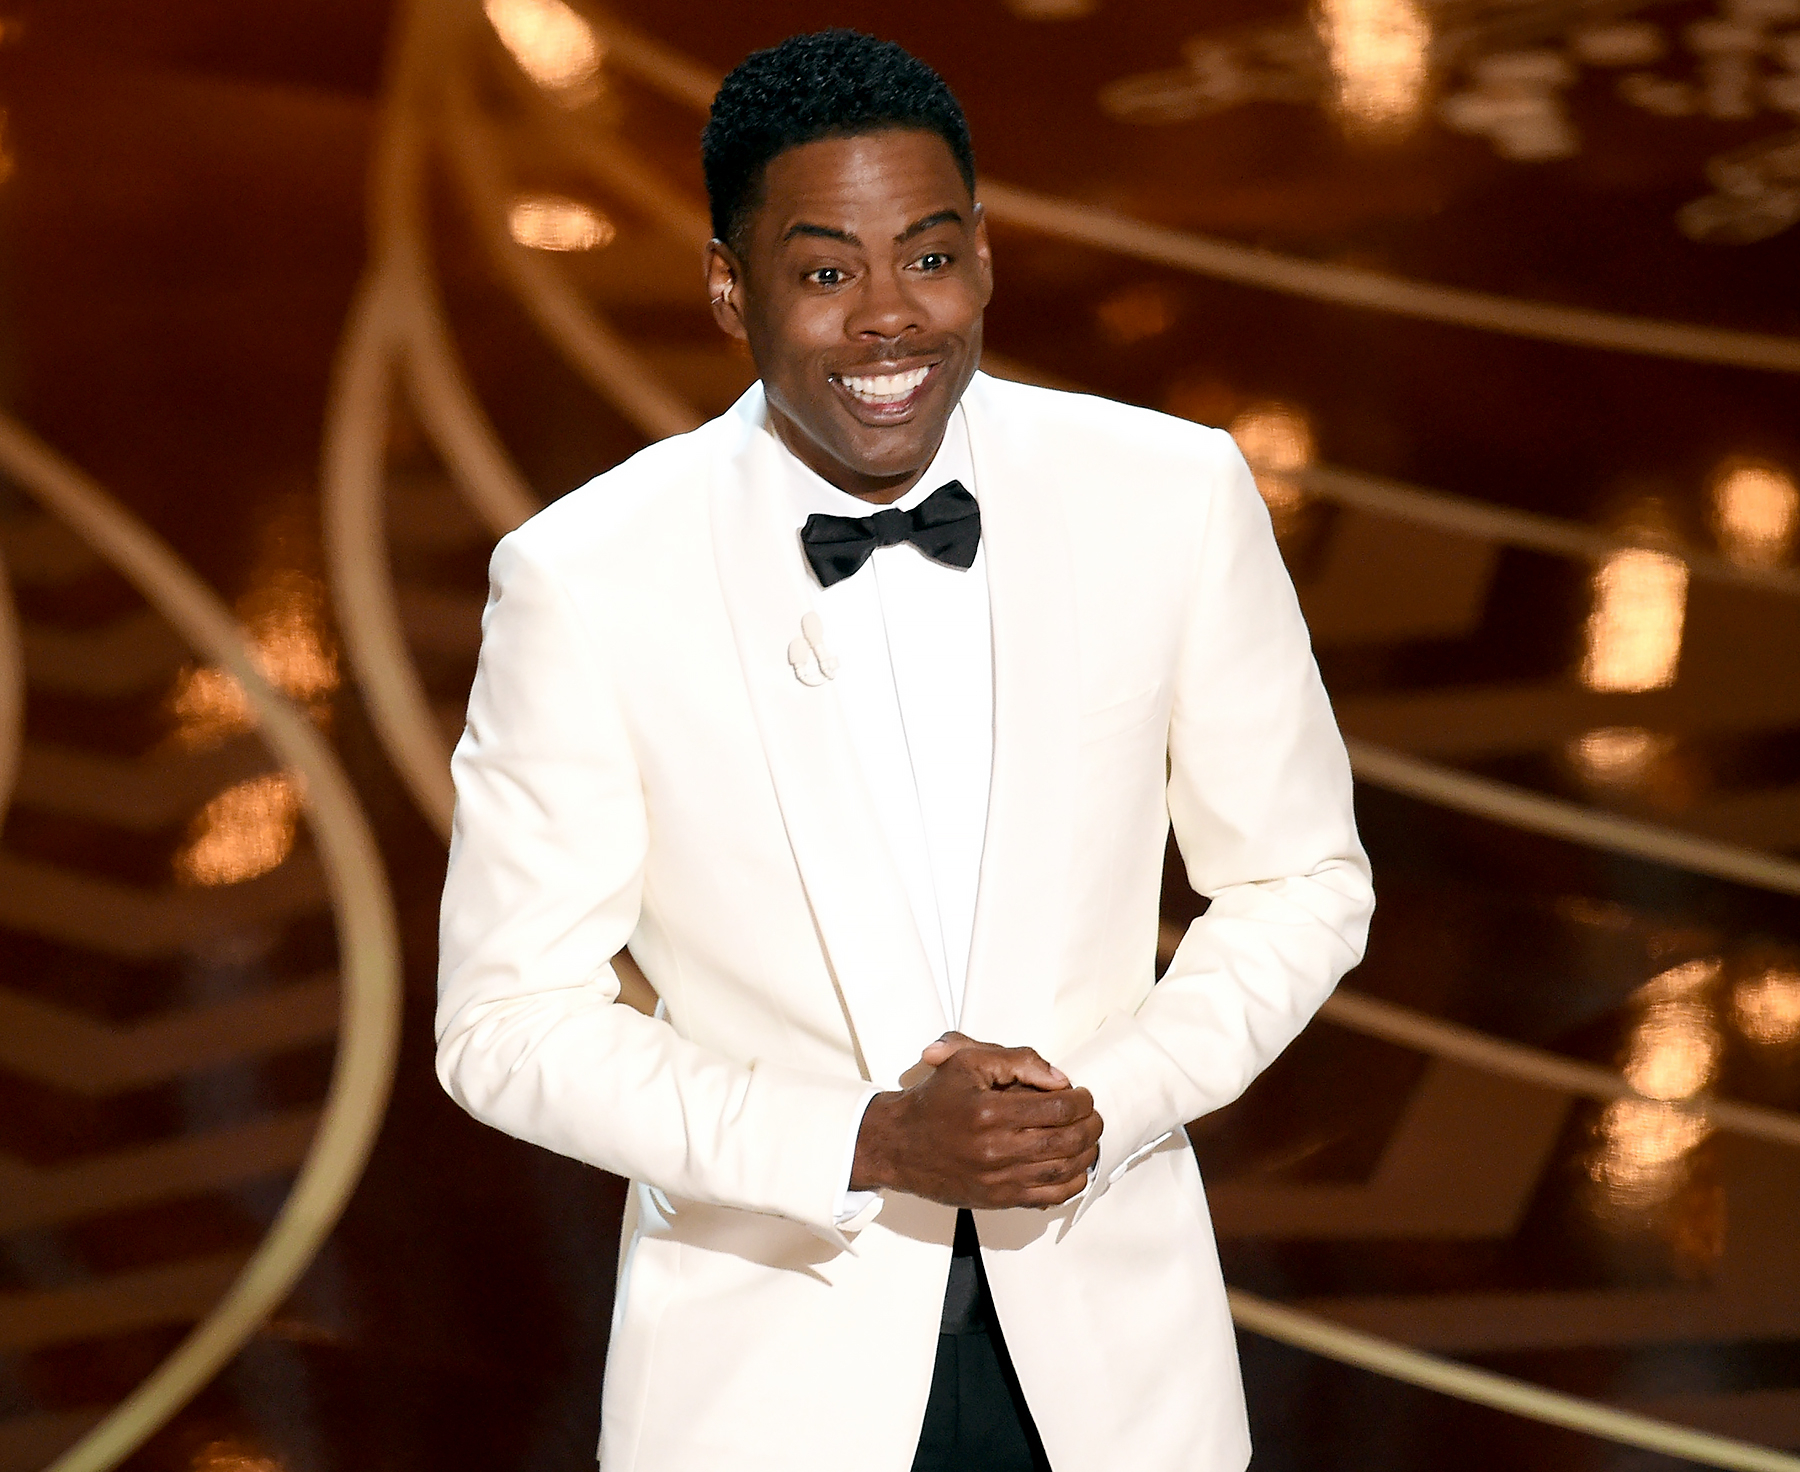 Chris Rock speaks onstage during the 88th Annual Academy Awards.